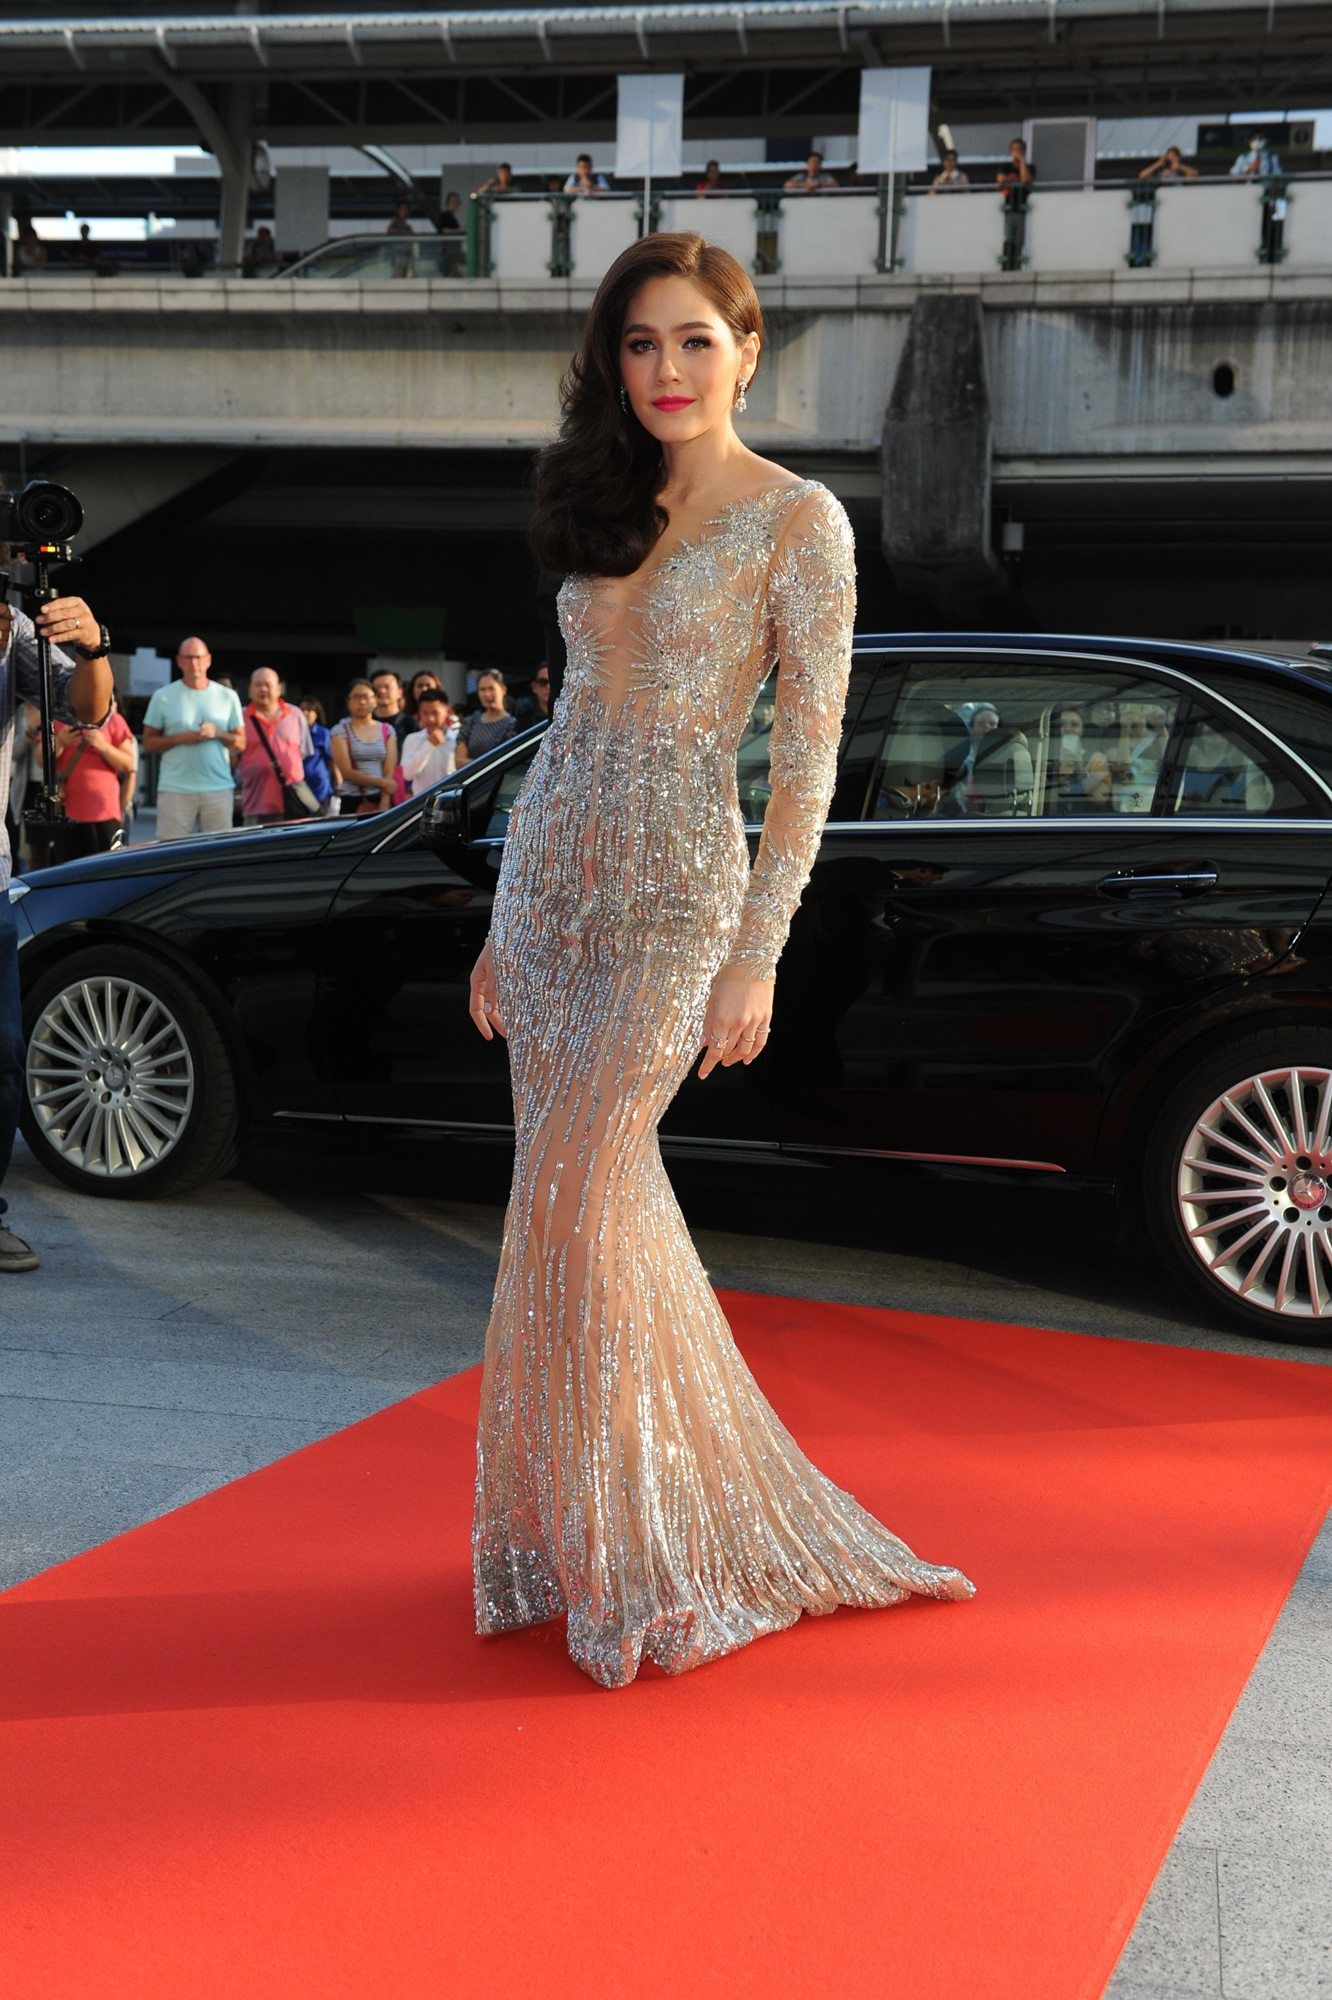 27. The Queen of Cannes is back